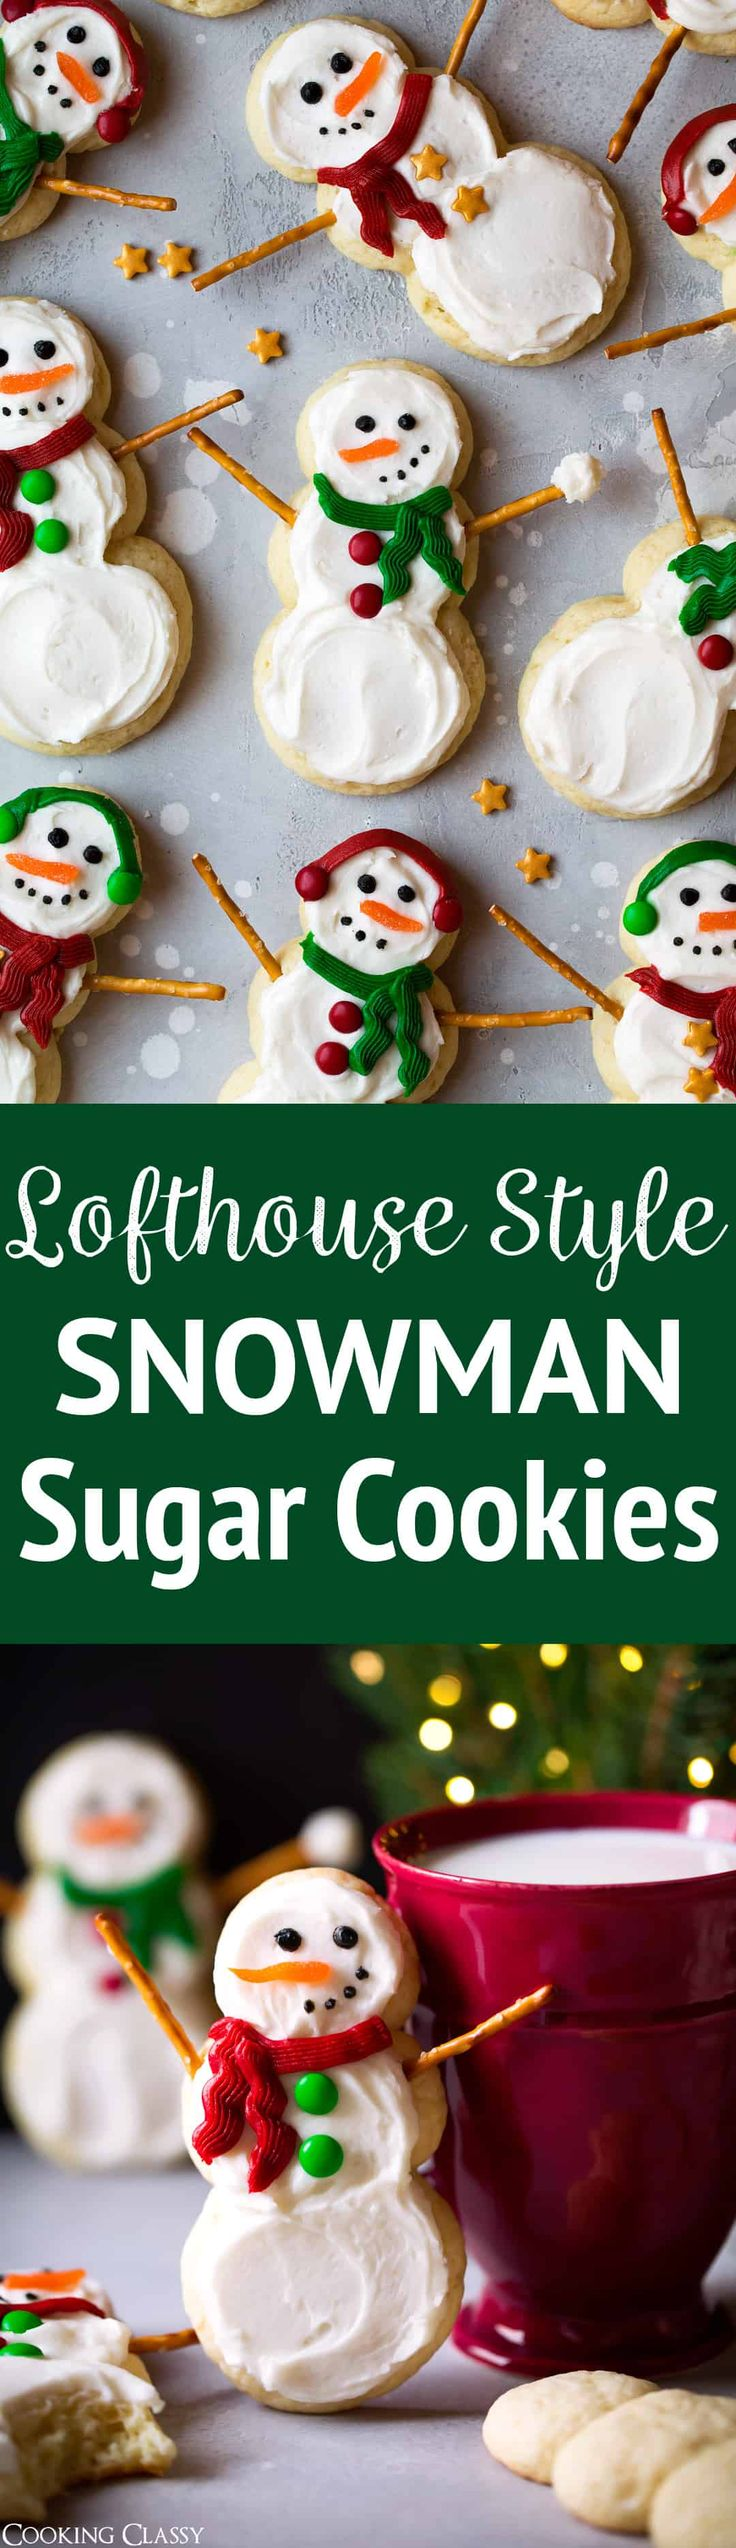 Lofthouse Style Snowman Sugar Cookies - One of the best Christmas cookies I've had! Fun to make, so delicious and just too cute. They would be the perfect gift to give this year.